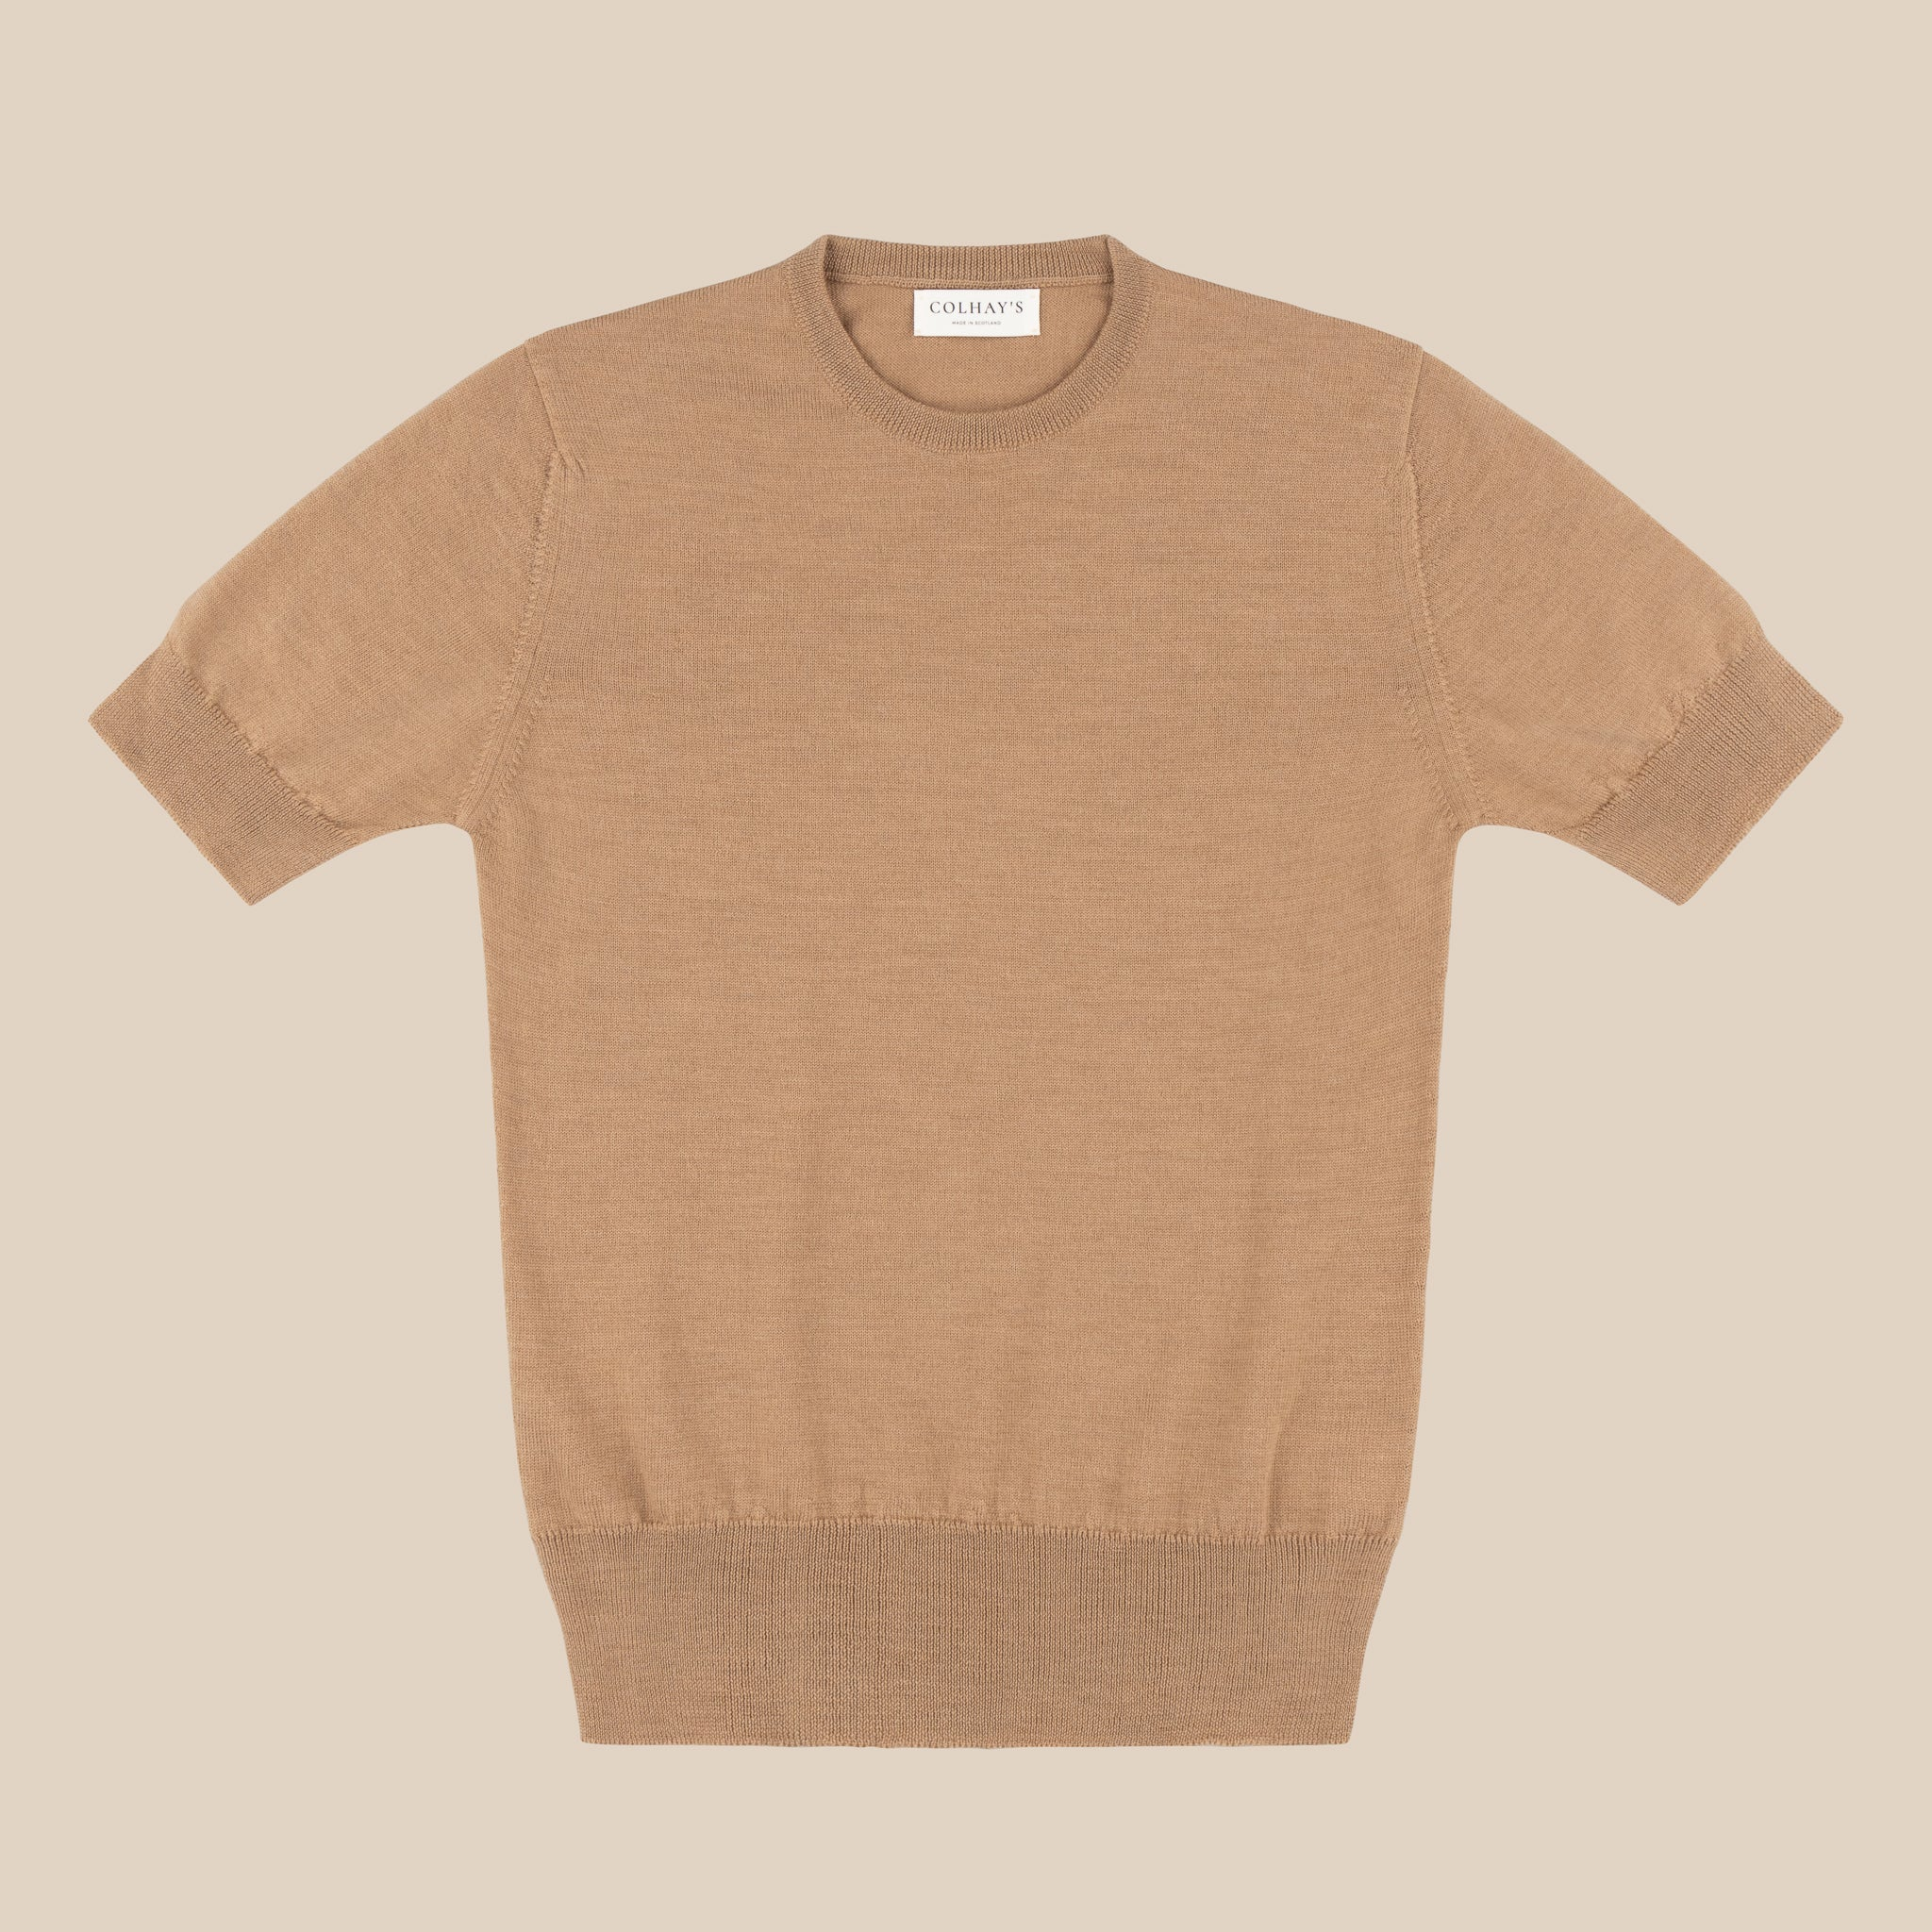 Merino sport shirt in camel